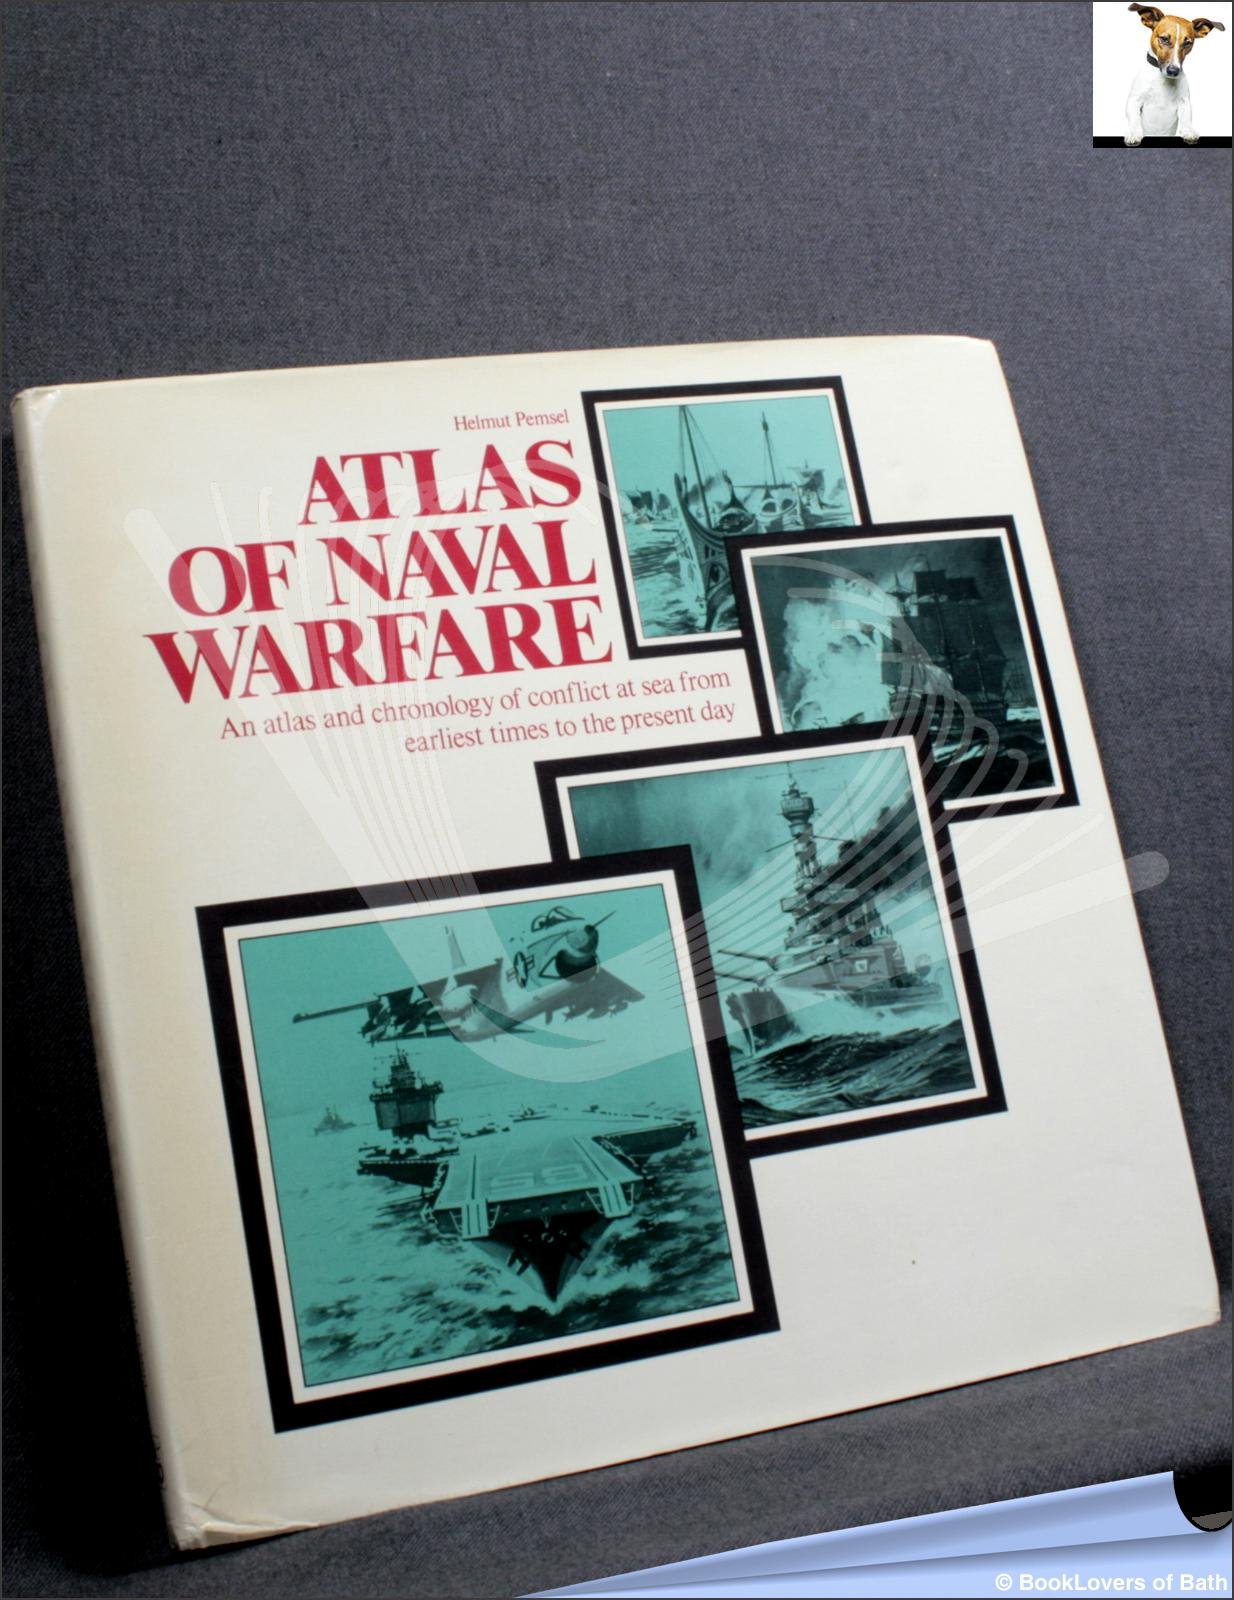 Atlas of Naval Warfare: An Atlas and Chronology of Conflict at Sea from Earliest Times to the Present Day - Helmut Pemsel